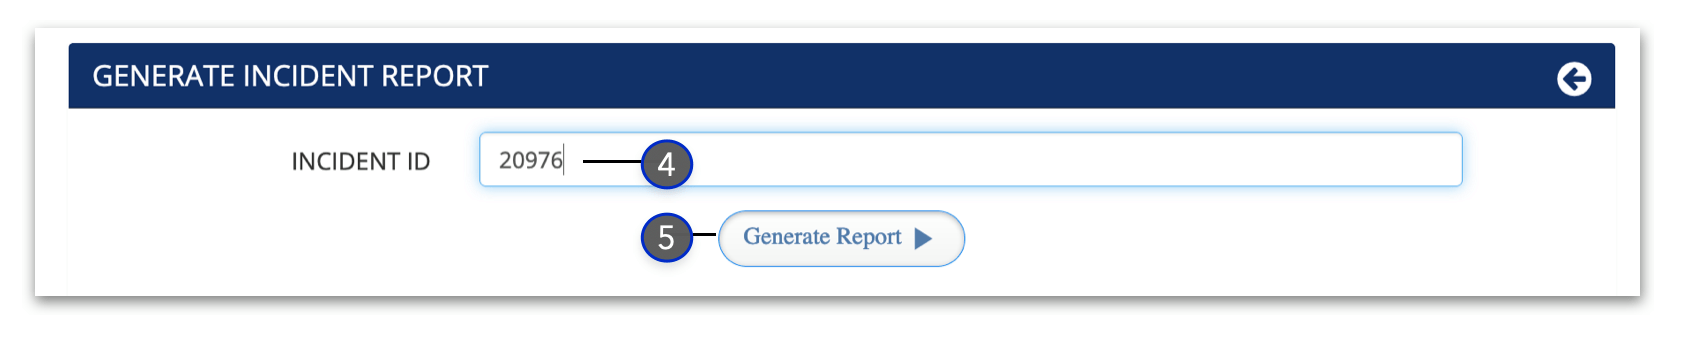 Generate Incident Report - Dispatcher Guide - Beacon Emergency Dispatch v4.0